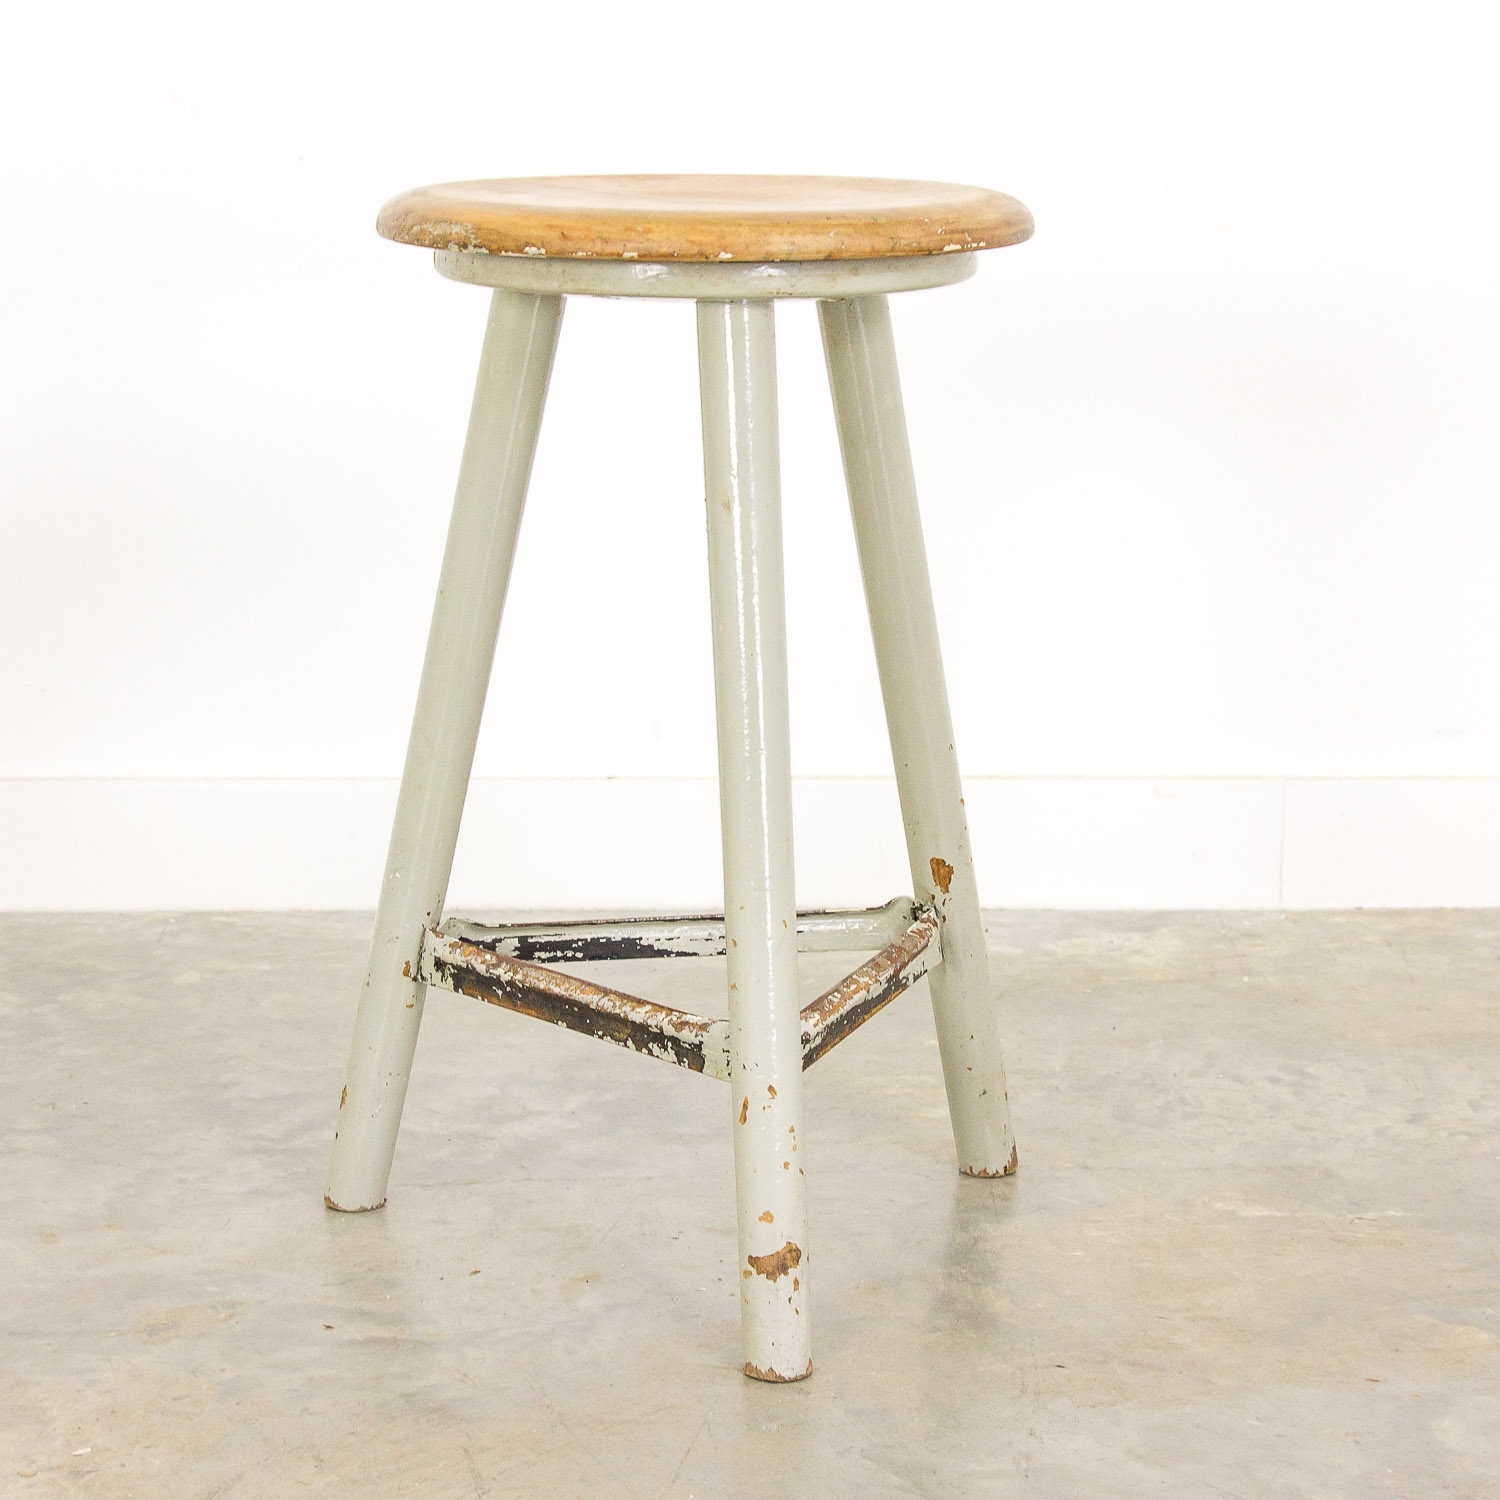 Vintage grey workshop stool by Ama-Schemel